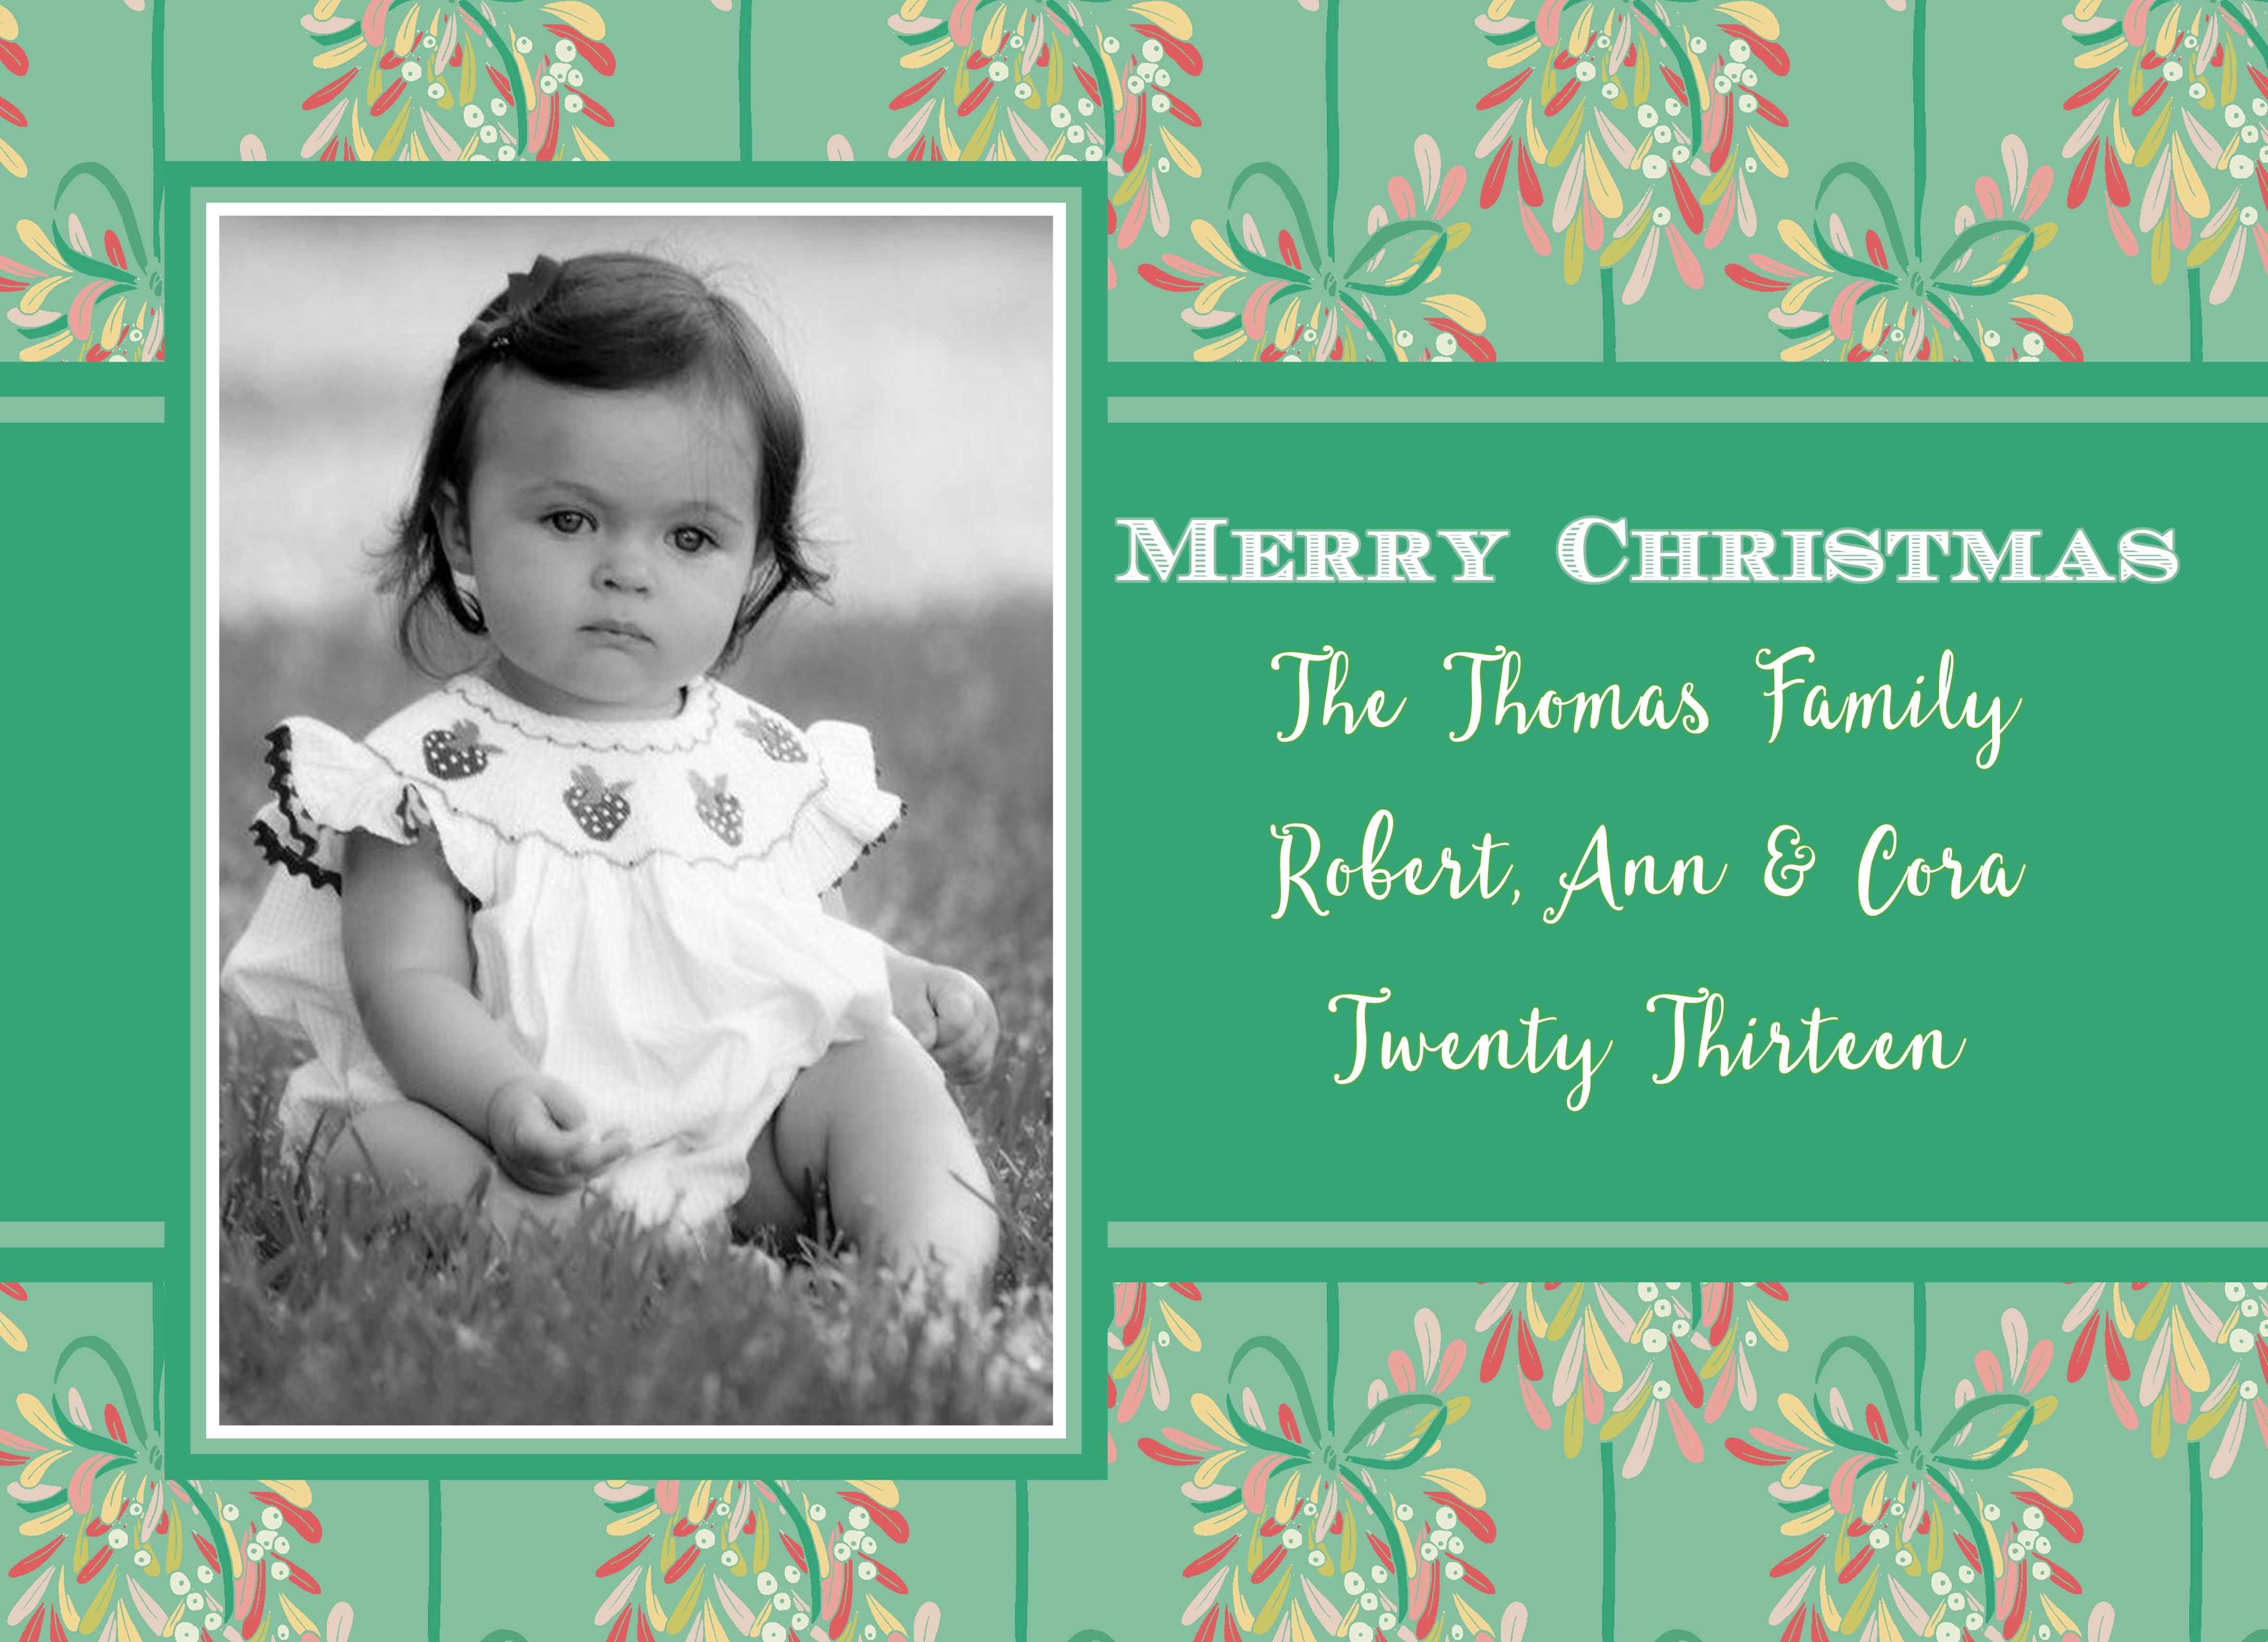 5752 Kennedy 3 Christmas Card In 2020 Personalized Holiday Card Christmas Photo Cards Holiday Photo Cards